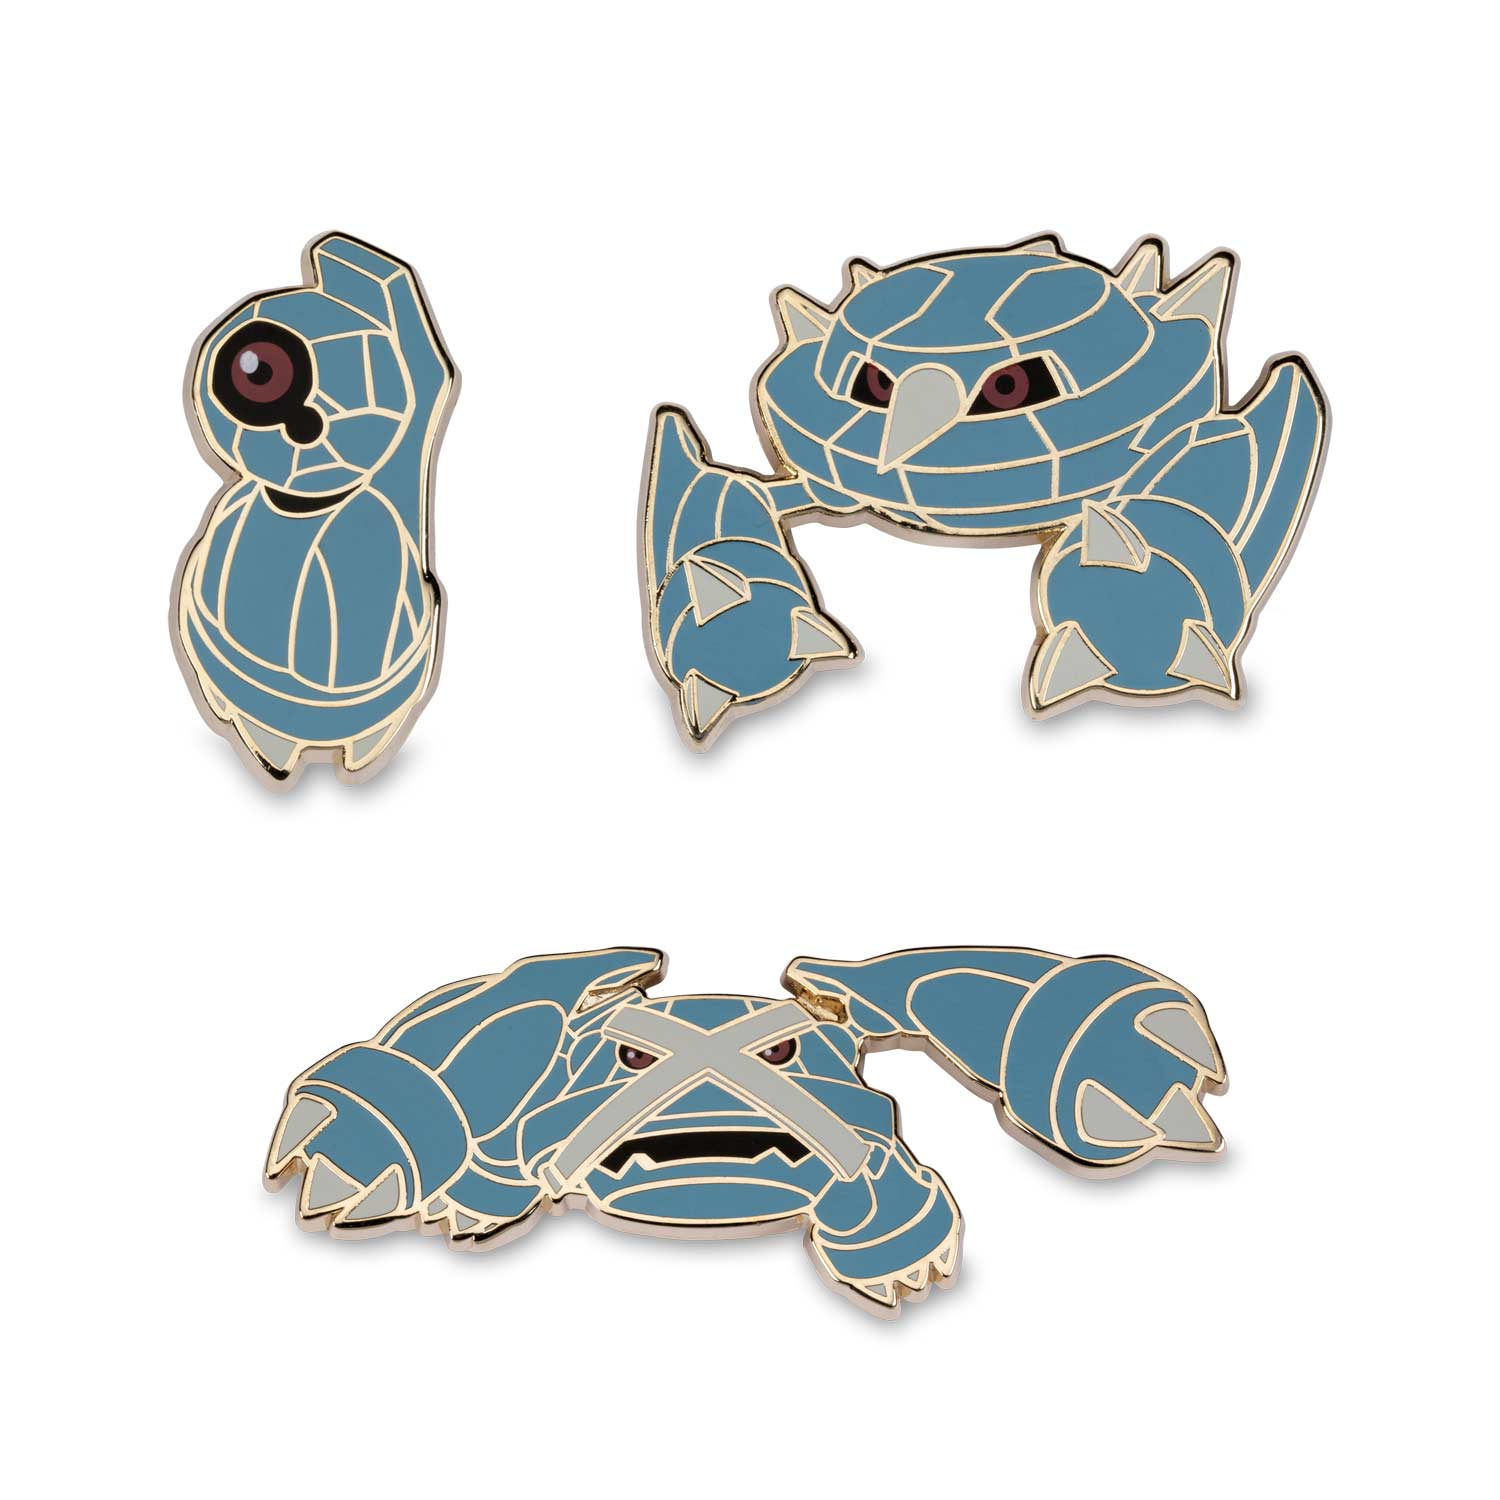 Beldum Metang Metagross Pokémon Pins 3 Pack